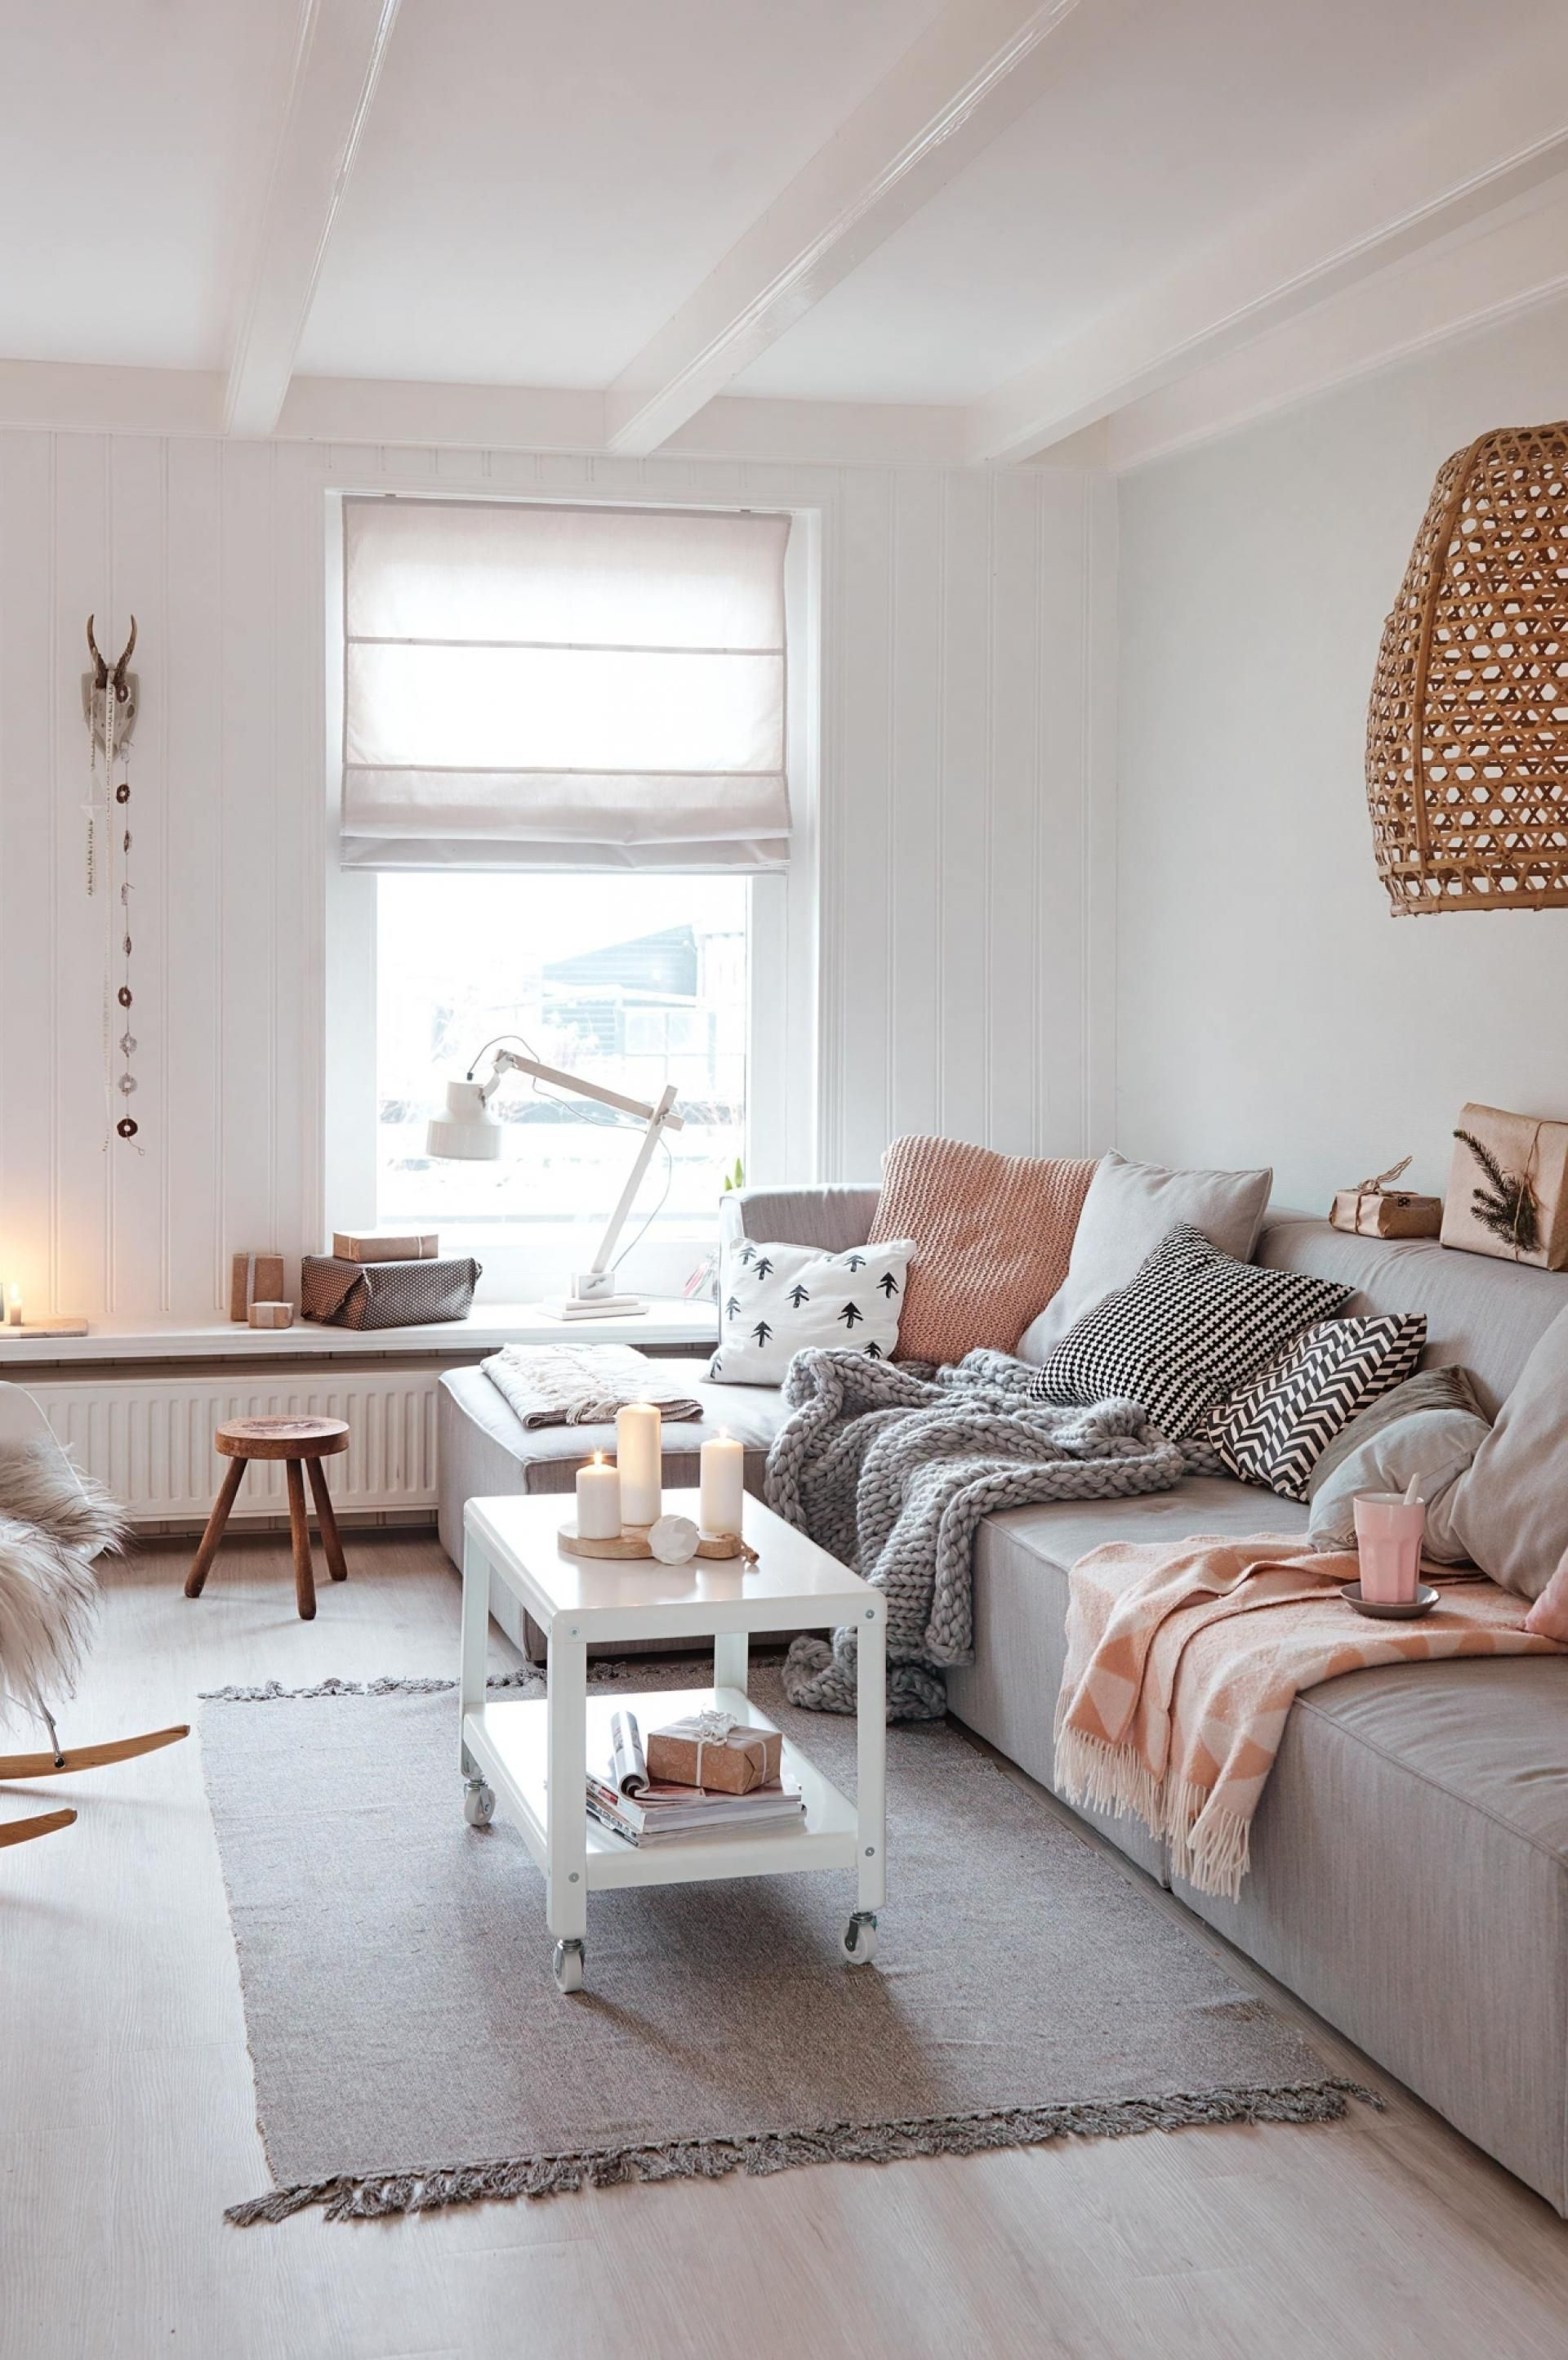 Top 10 Tips For Adding Scandinavian Style To Your Home Decoracao